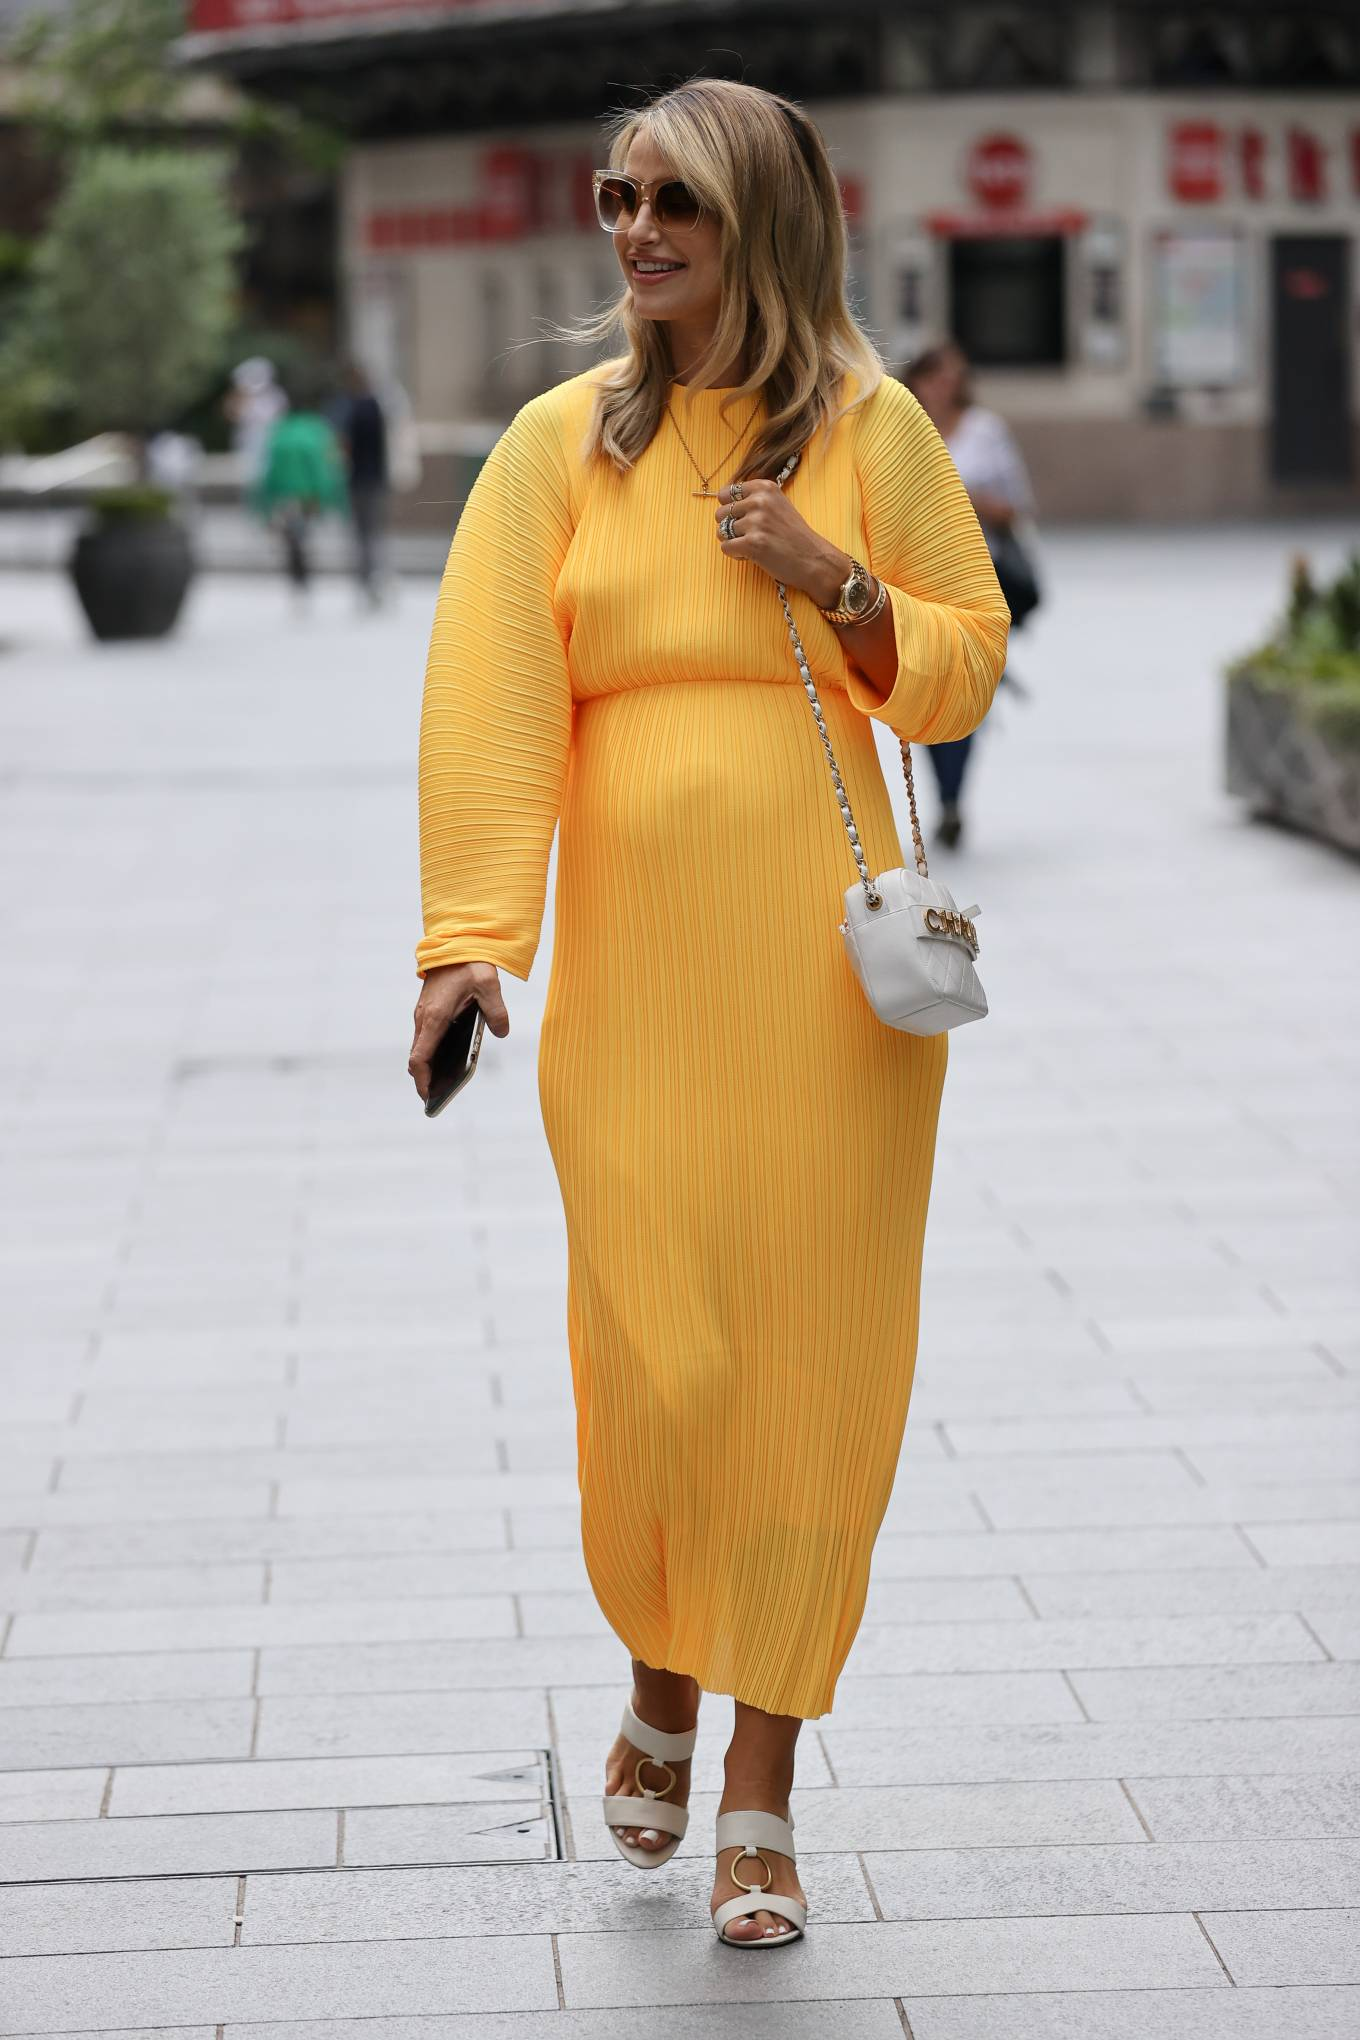 Vogue Williams in Yellow Dress - Out in London